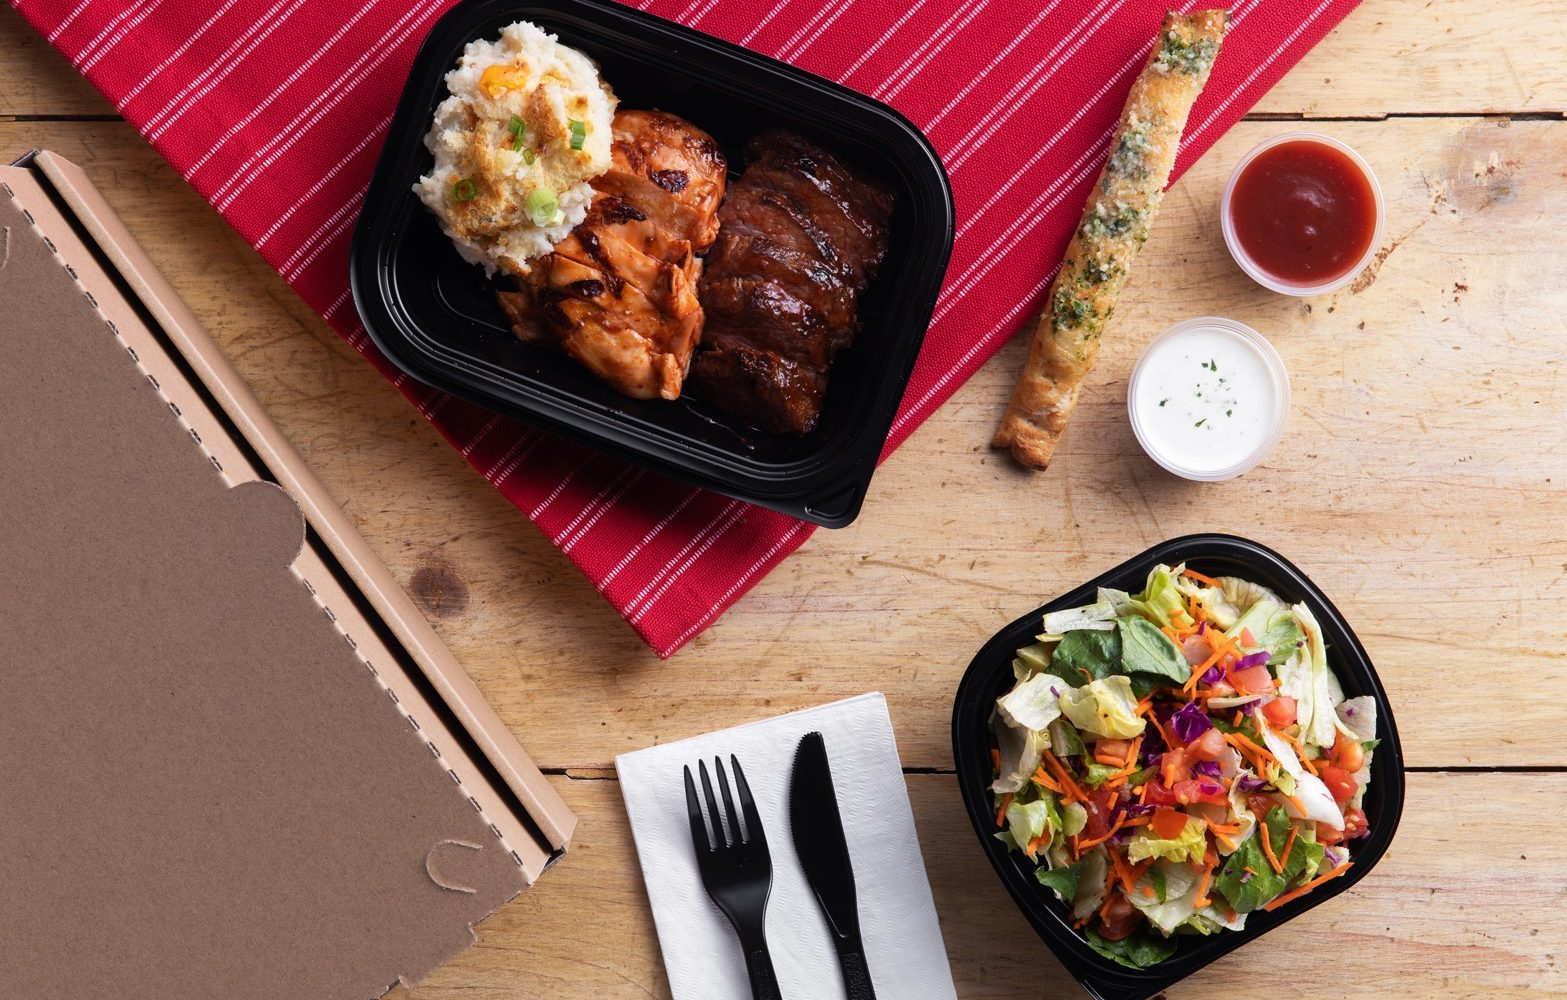 Boxed Meal Catering is here